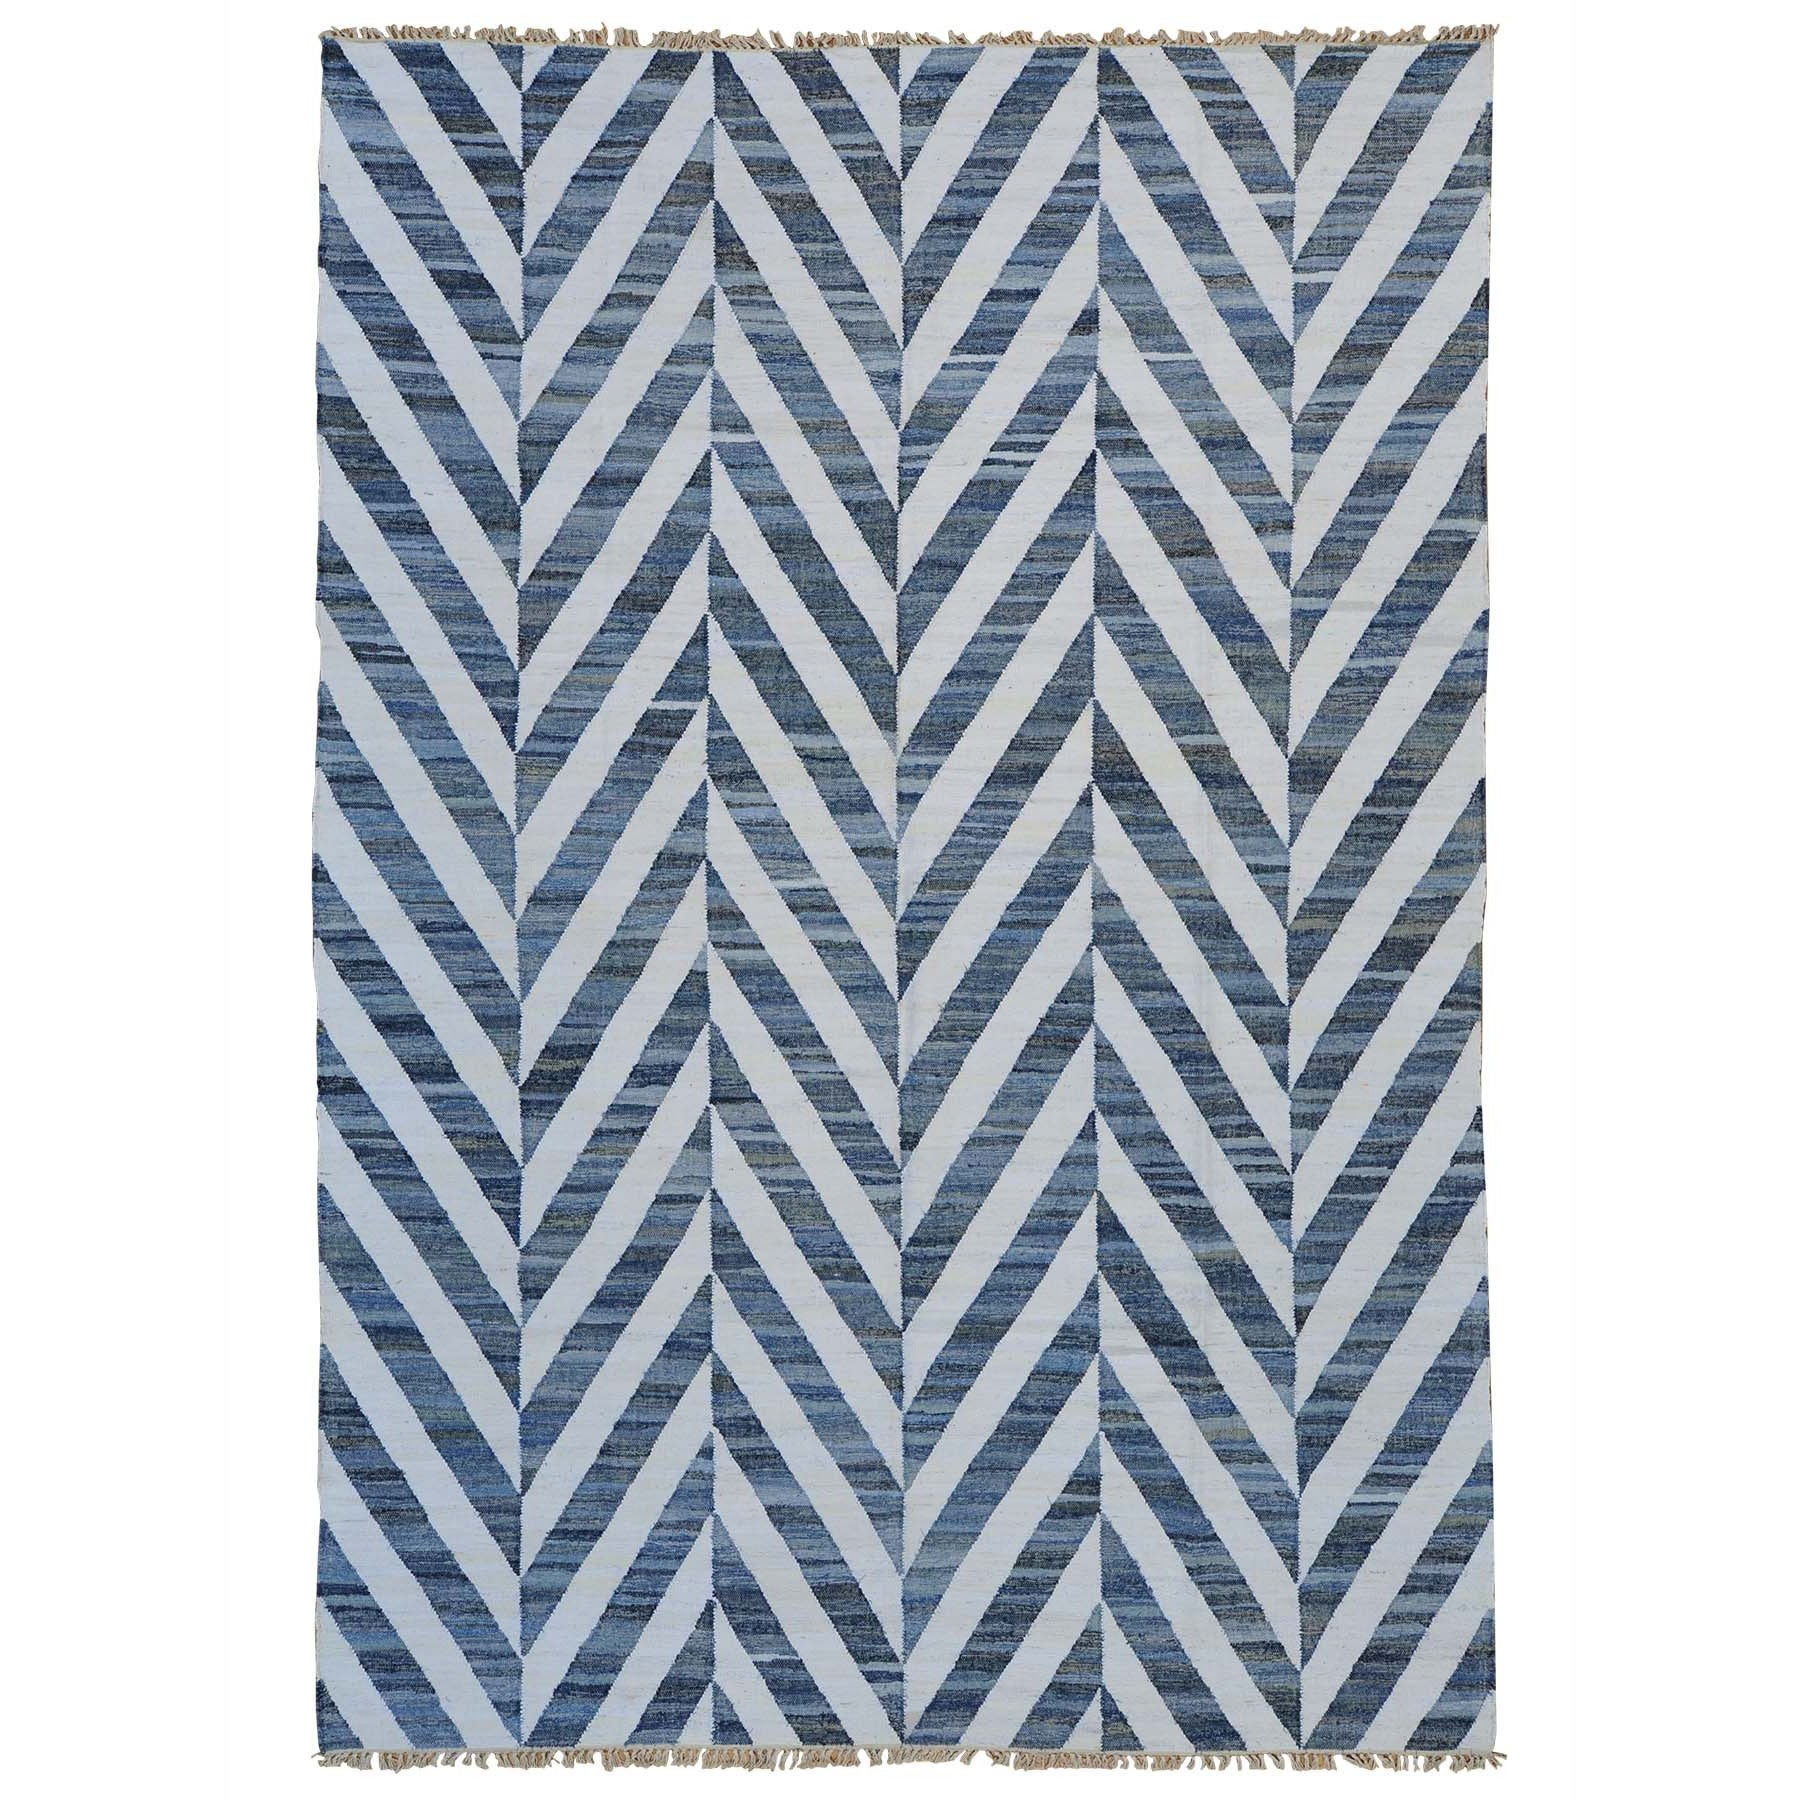 Handmade Flat Weave Denim Jeans Durie Kilim Oriental Rug Multi Color Free Shipping Today Com 10148525